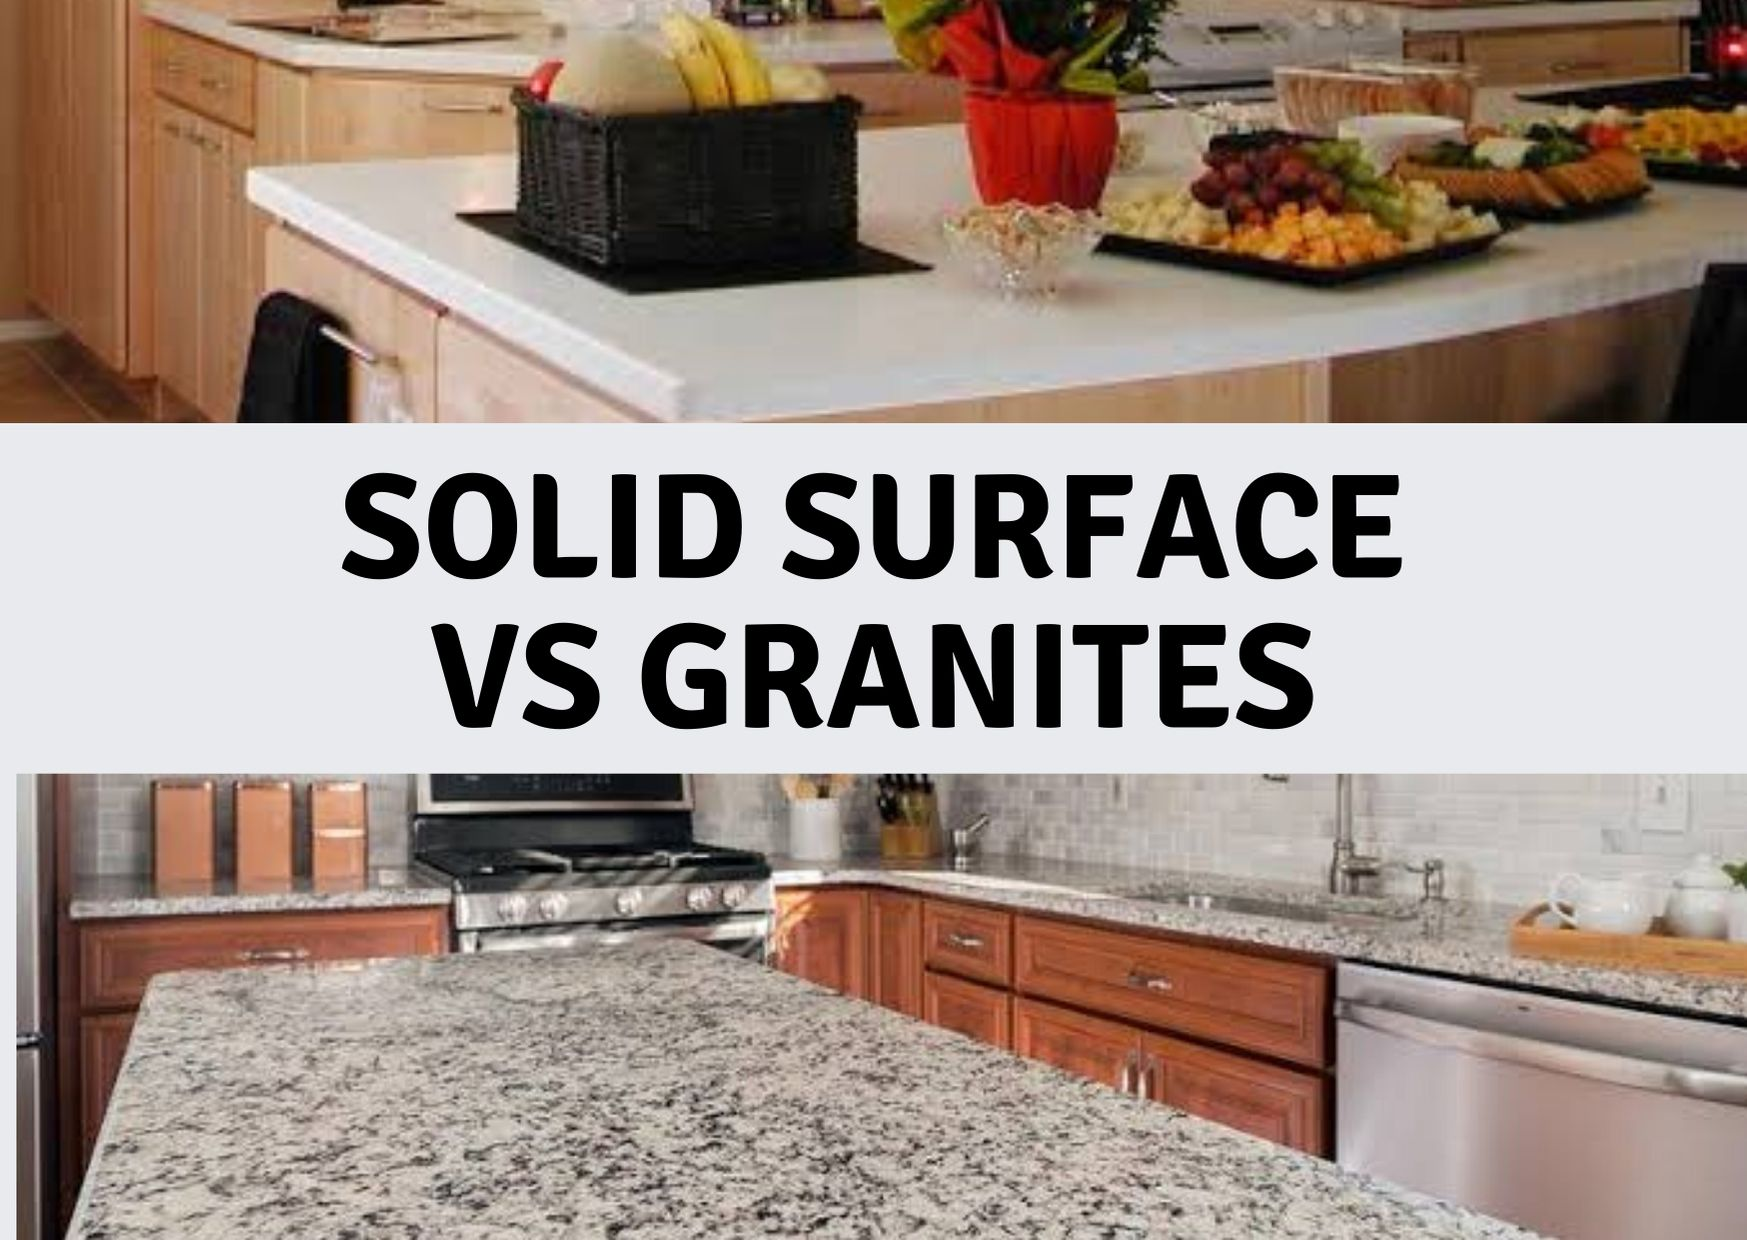 Solid Surface vs Granites- Advantages & Disadvantages